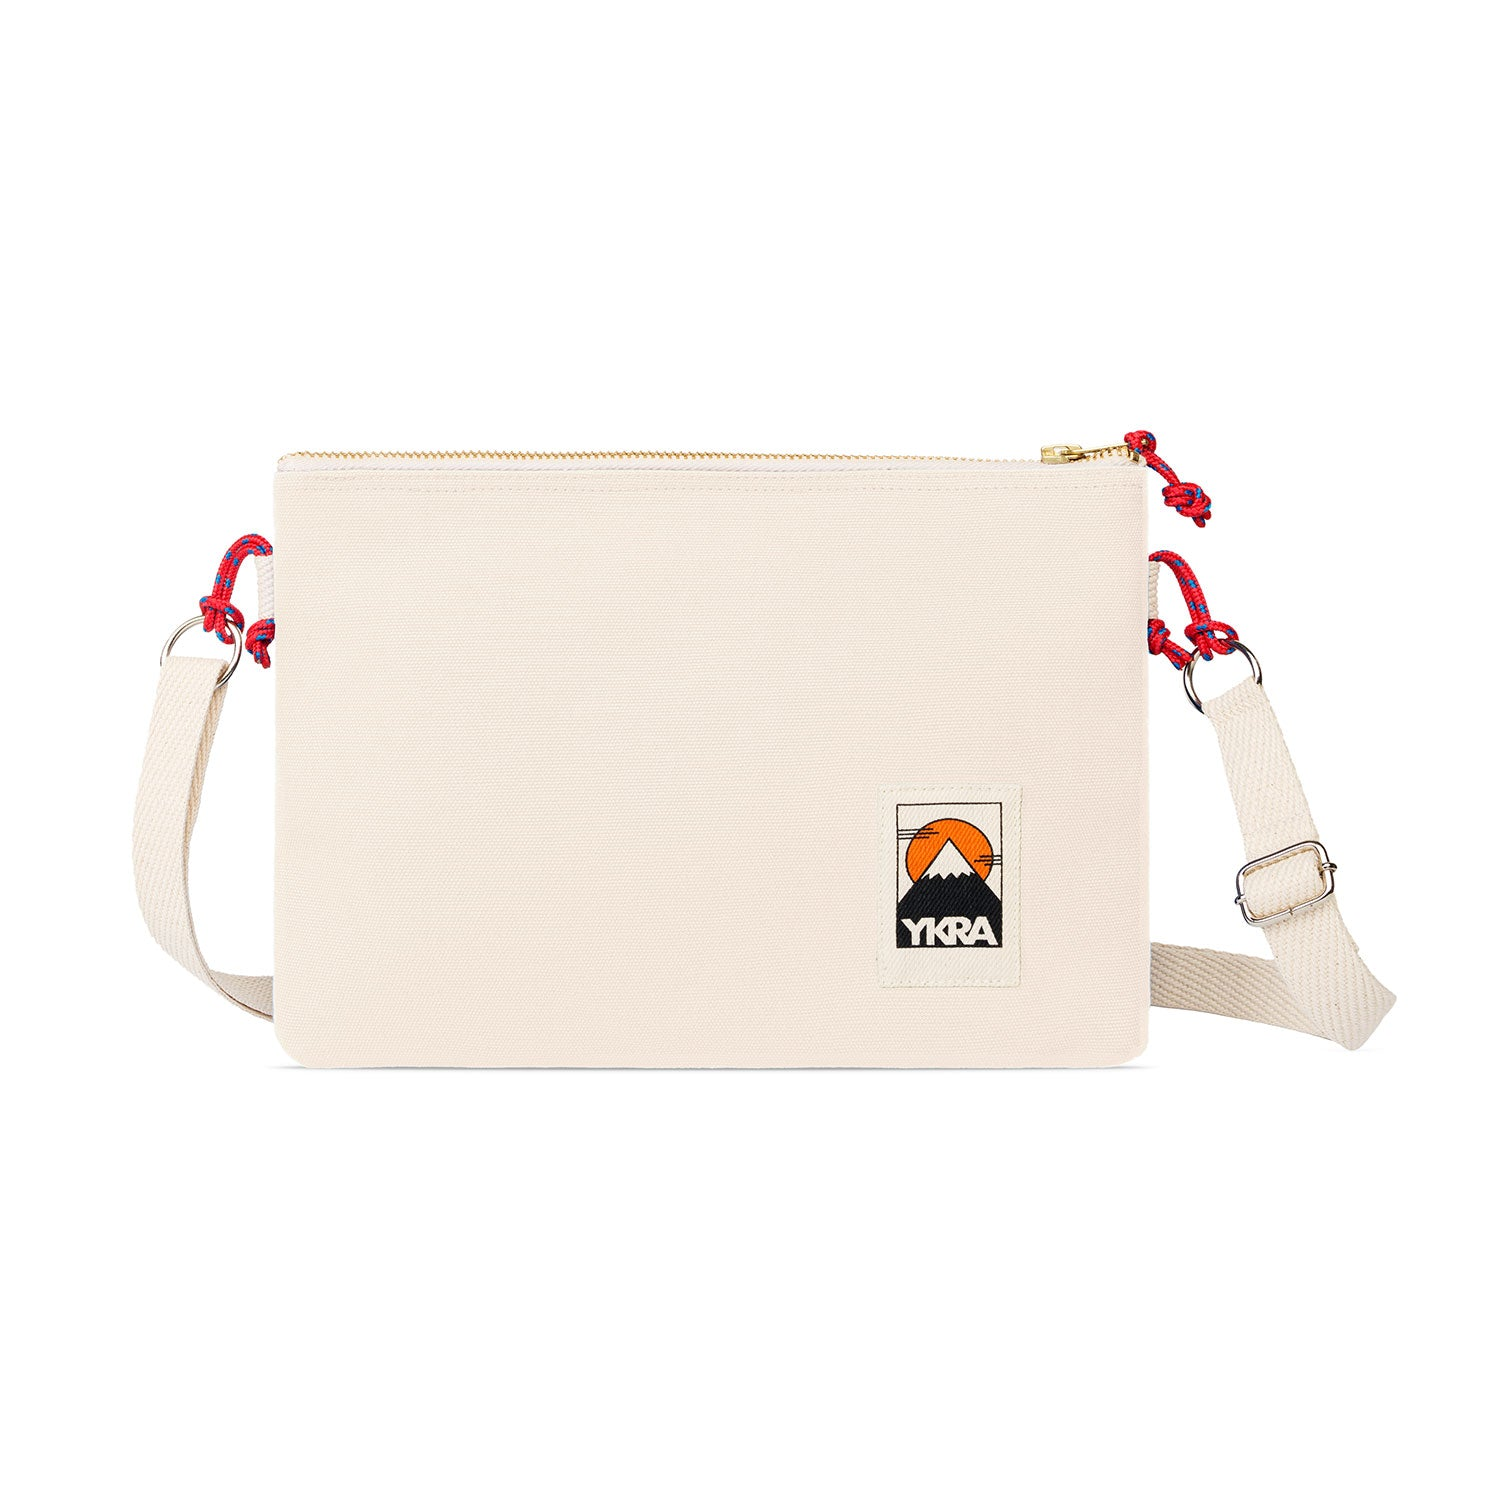 SIDE POUCH - WHITE